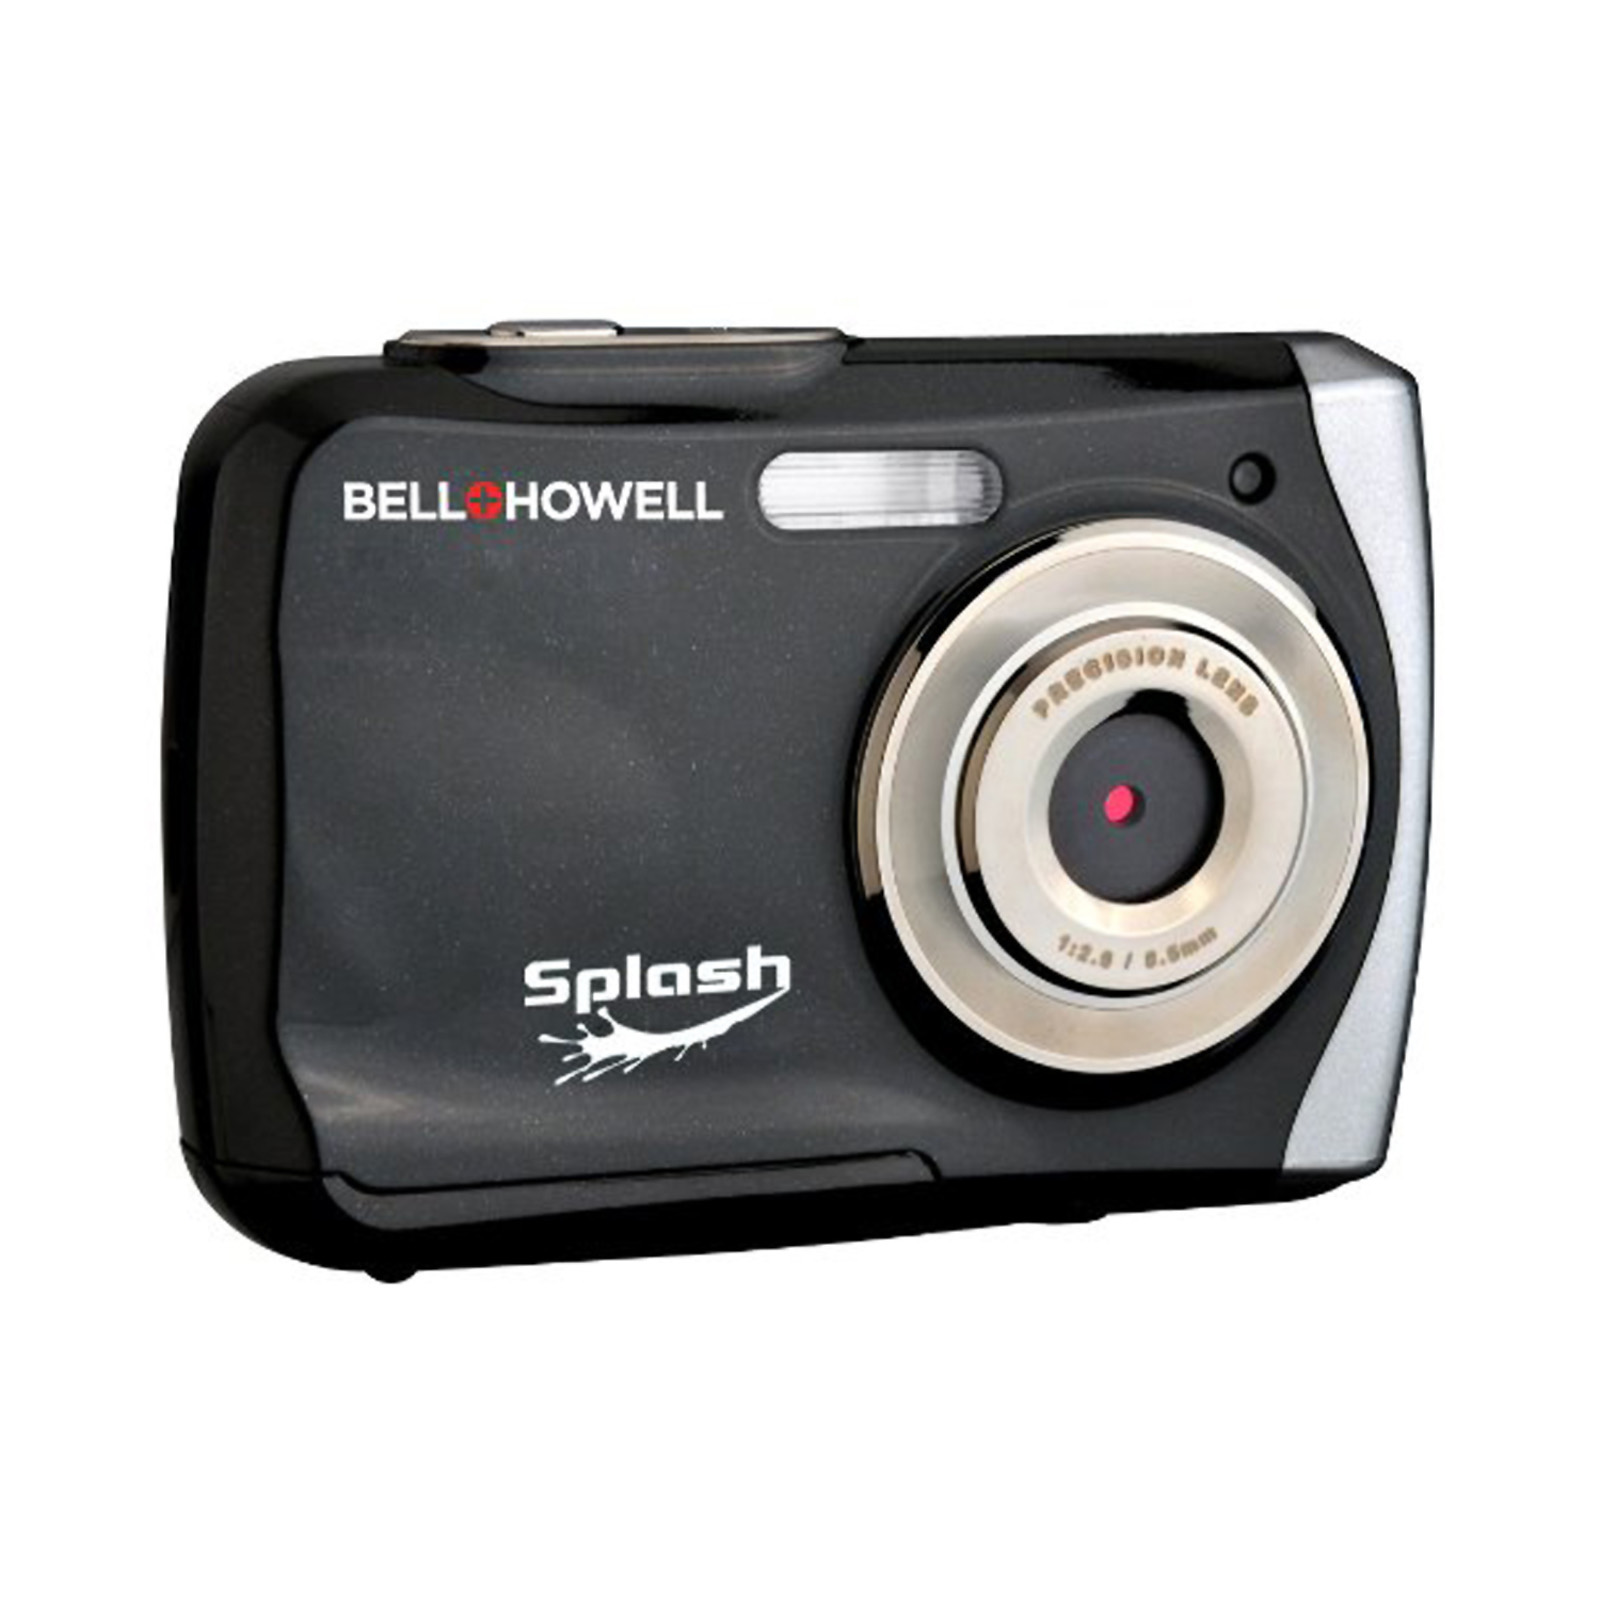 Bell+Howell Splash WP7 12 MP Camera-Black